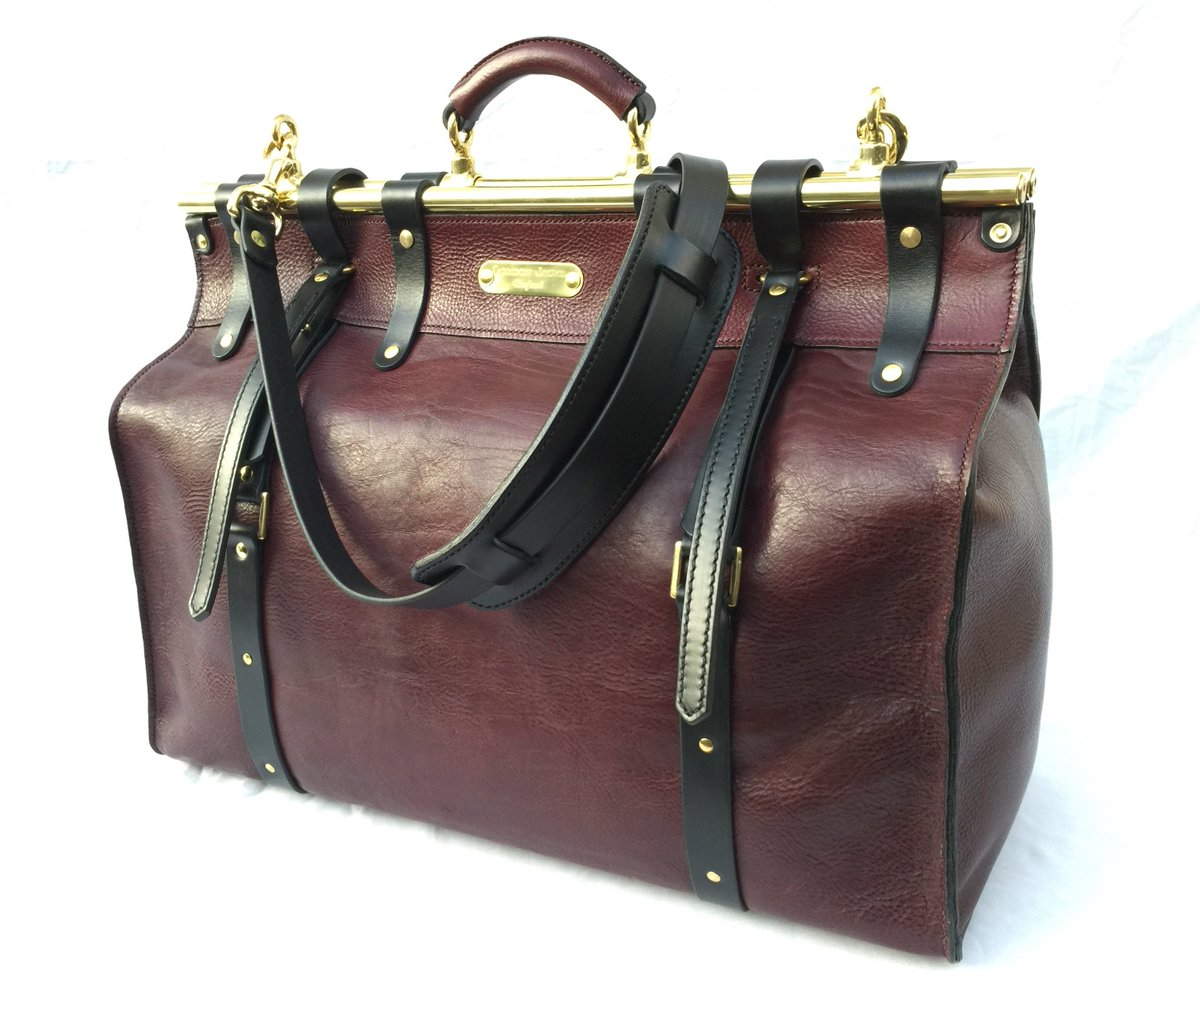 #Fashion Awesome of the Day: #Steampunk-ish Mulberry Leather Weekend Travel Bag with Brass tubes hand made by @LondonJacks #SamaFashion